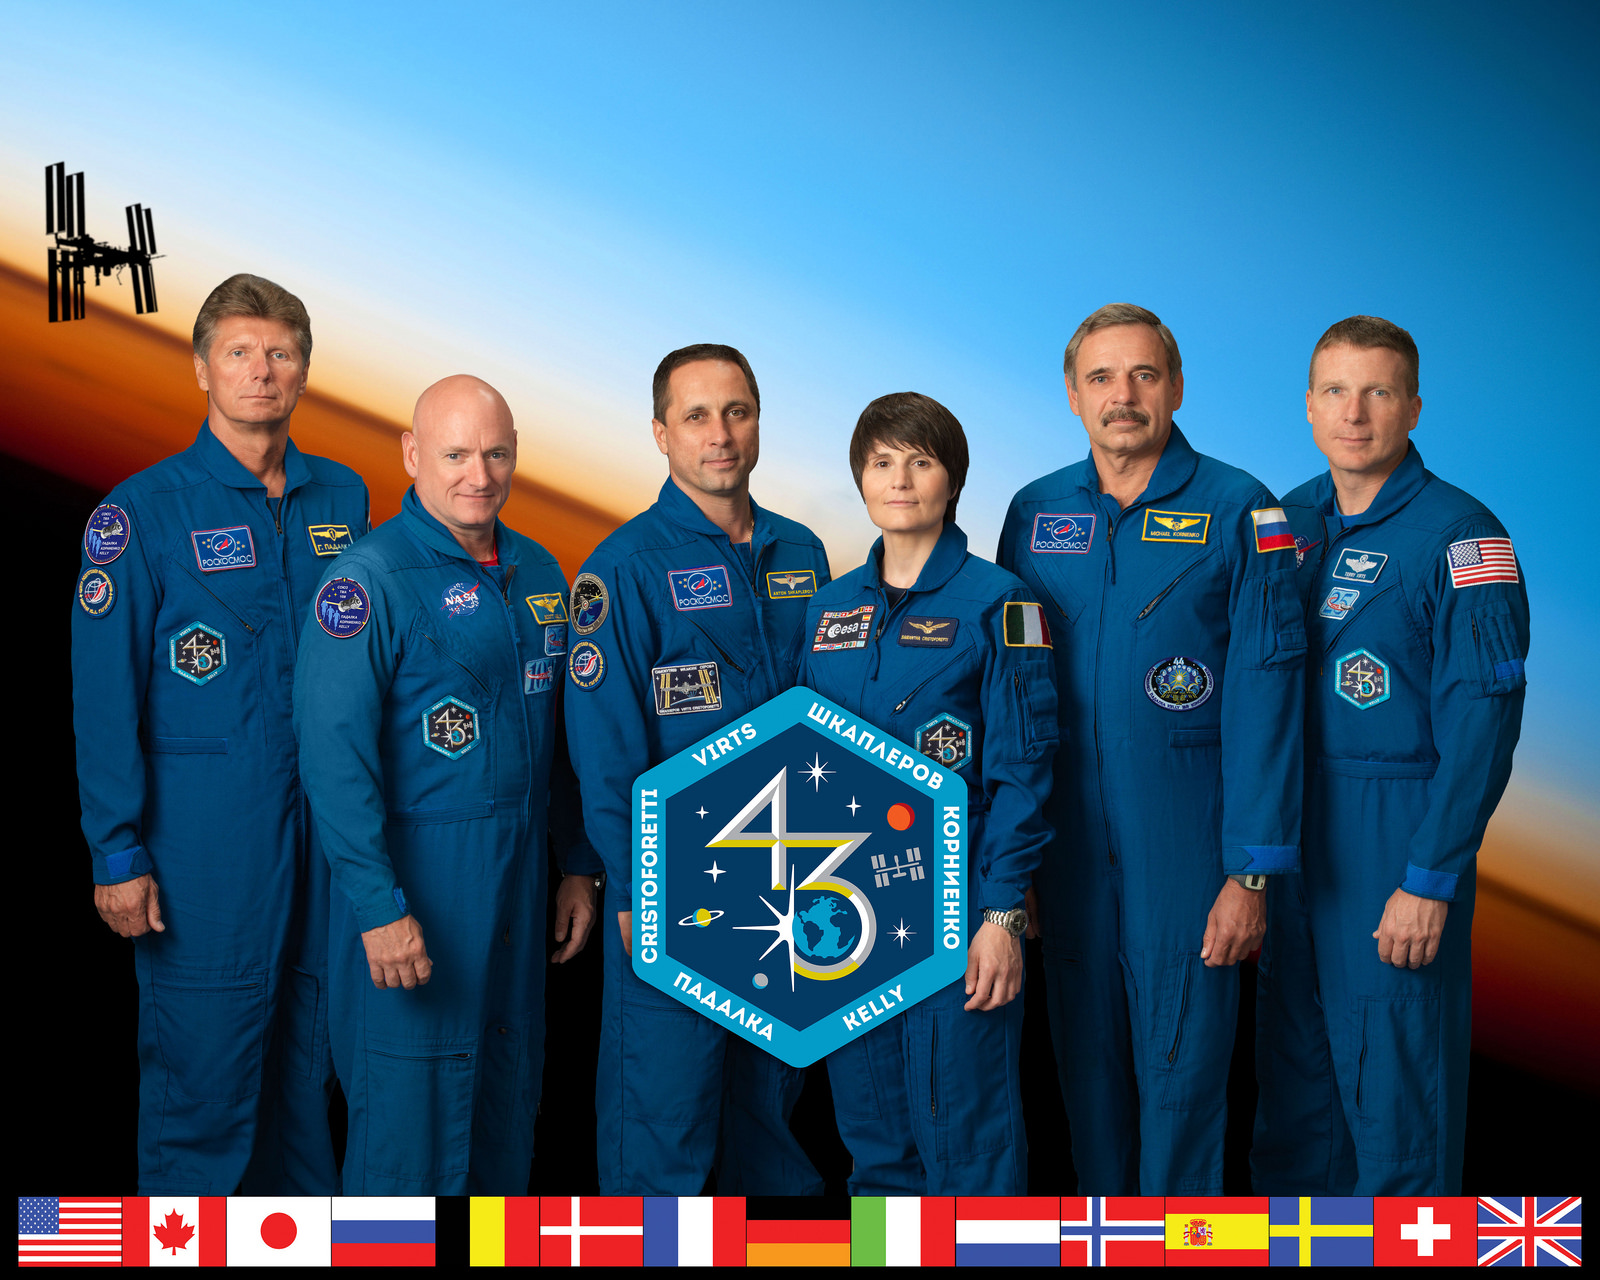 http://www.astronautinews.it/wp-content/uploads/2014/09/exp43-portrait.jpg